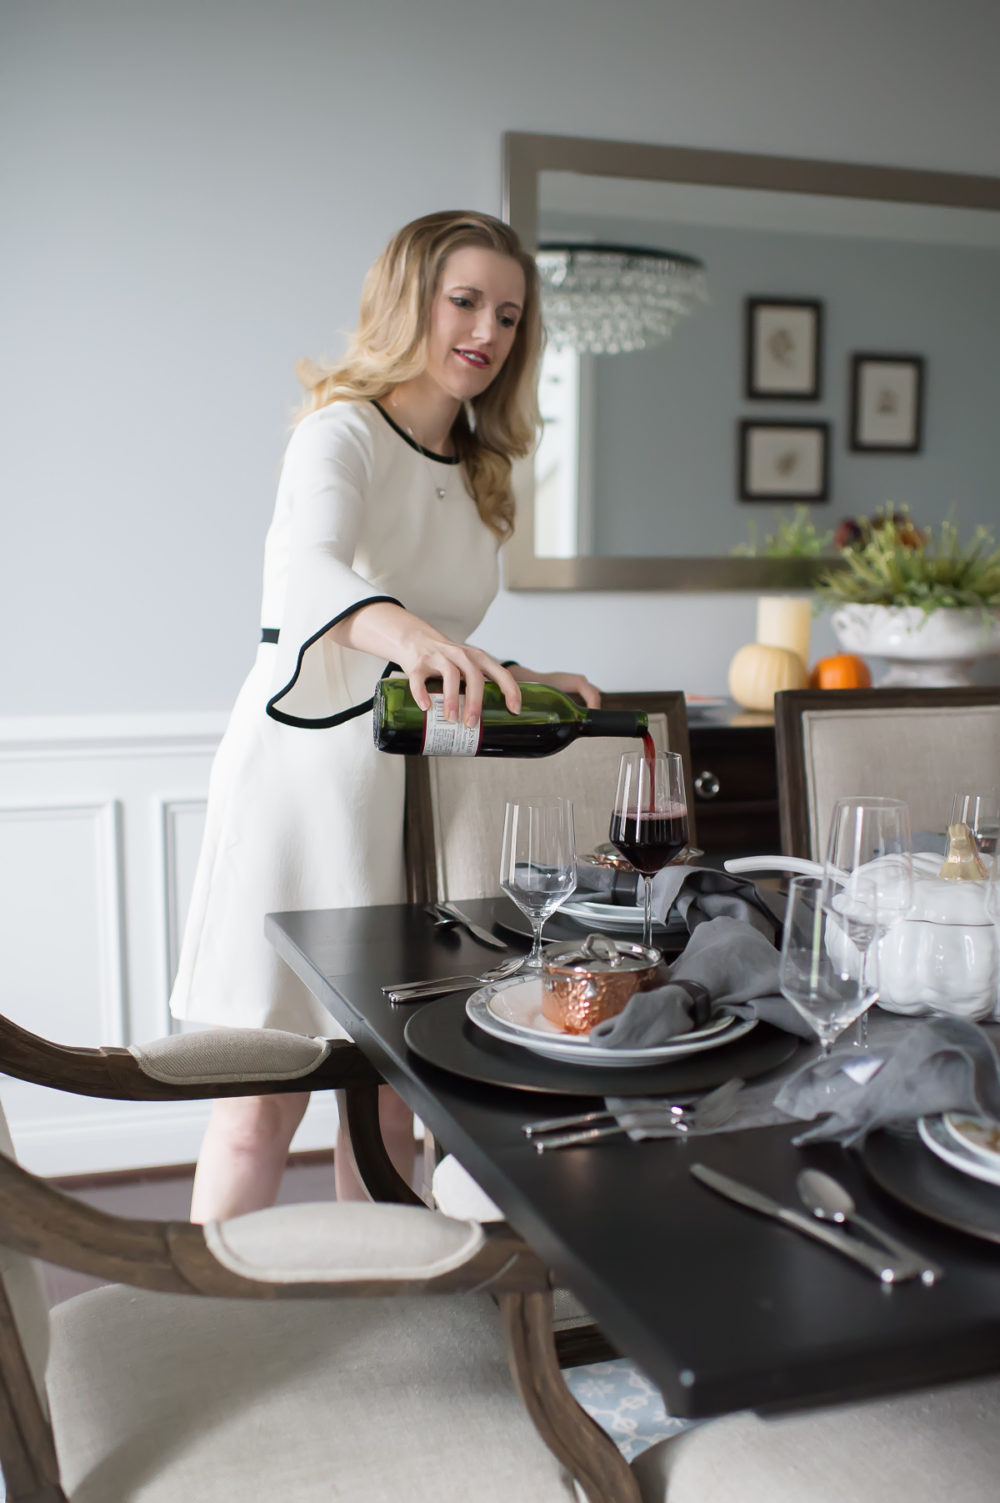 Petite Fashion and Style Blog | Williams Sonoma In Home Consultation | Williams Sonoma Acorn Plates | Click to Read More... - Our Thanksgiving Tablescape with Williams Sonoma by popular Michigan style blogger The Blue Hydrangeas